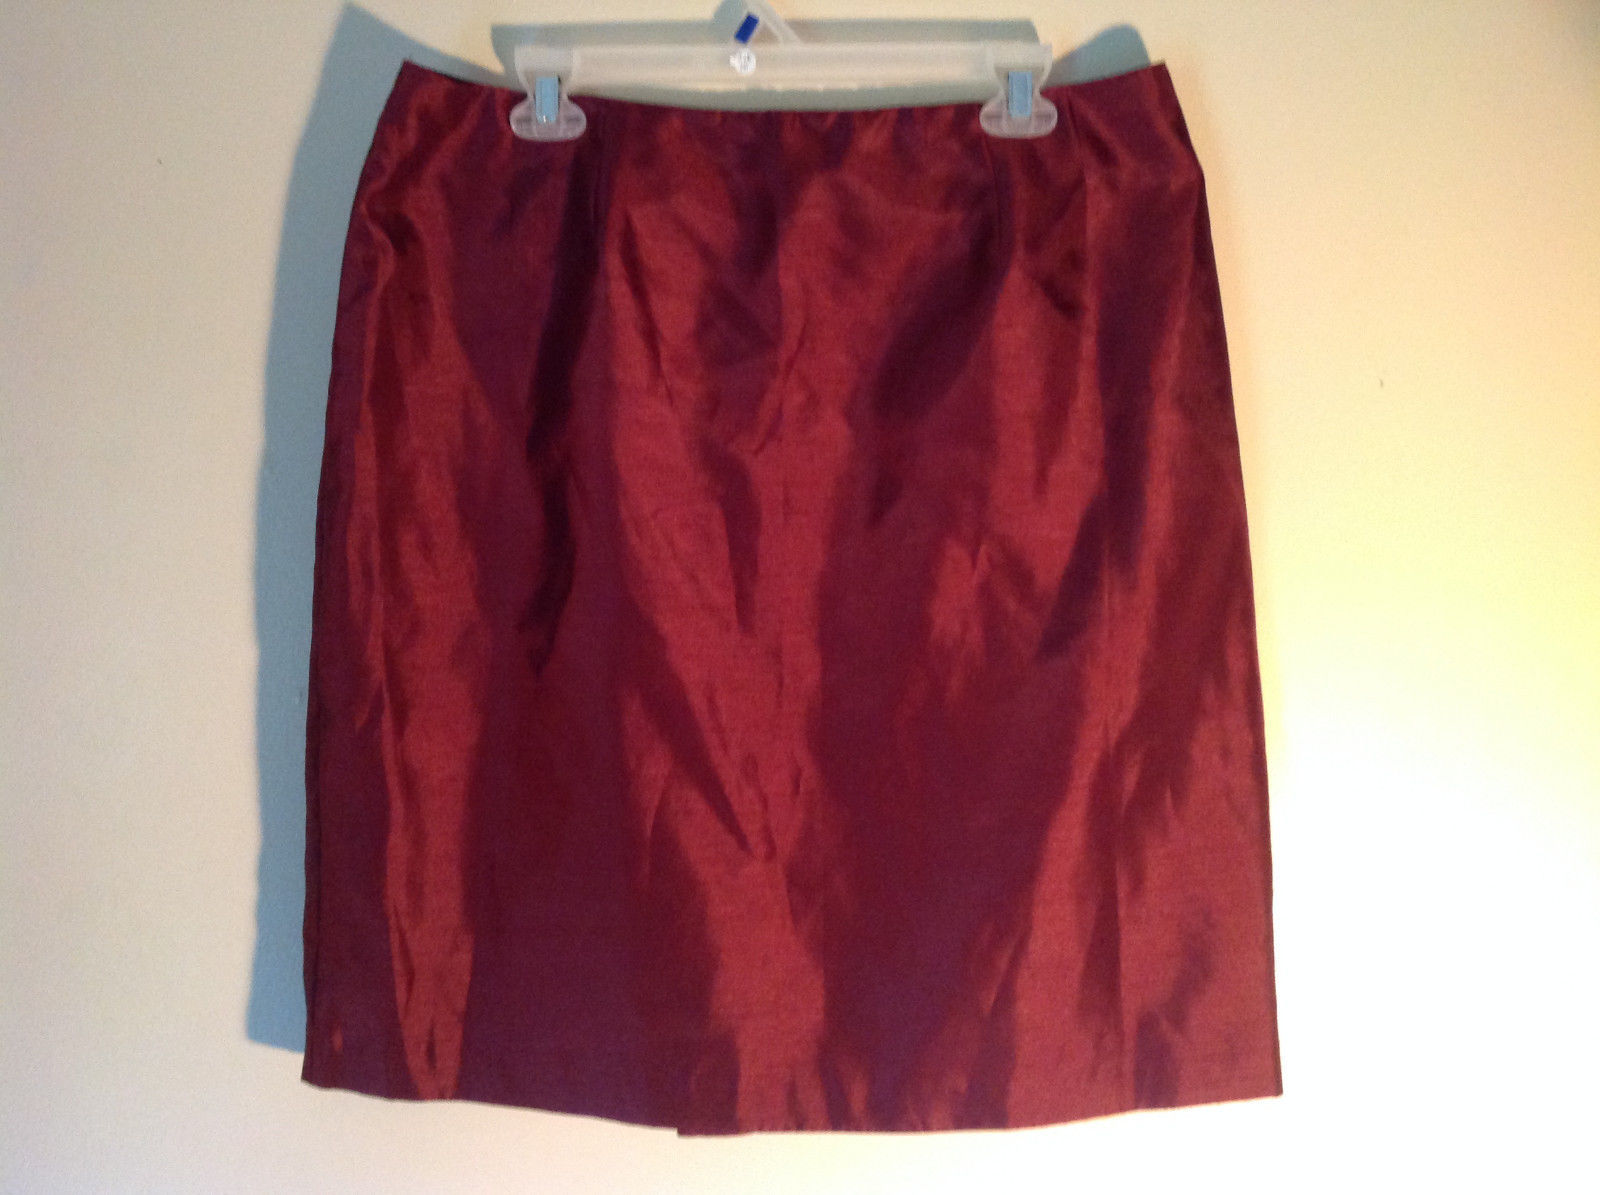 Wine Colored Skirt Size 16 Slit in Back for Easy Movement Back Zipper Closure